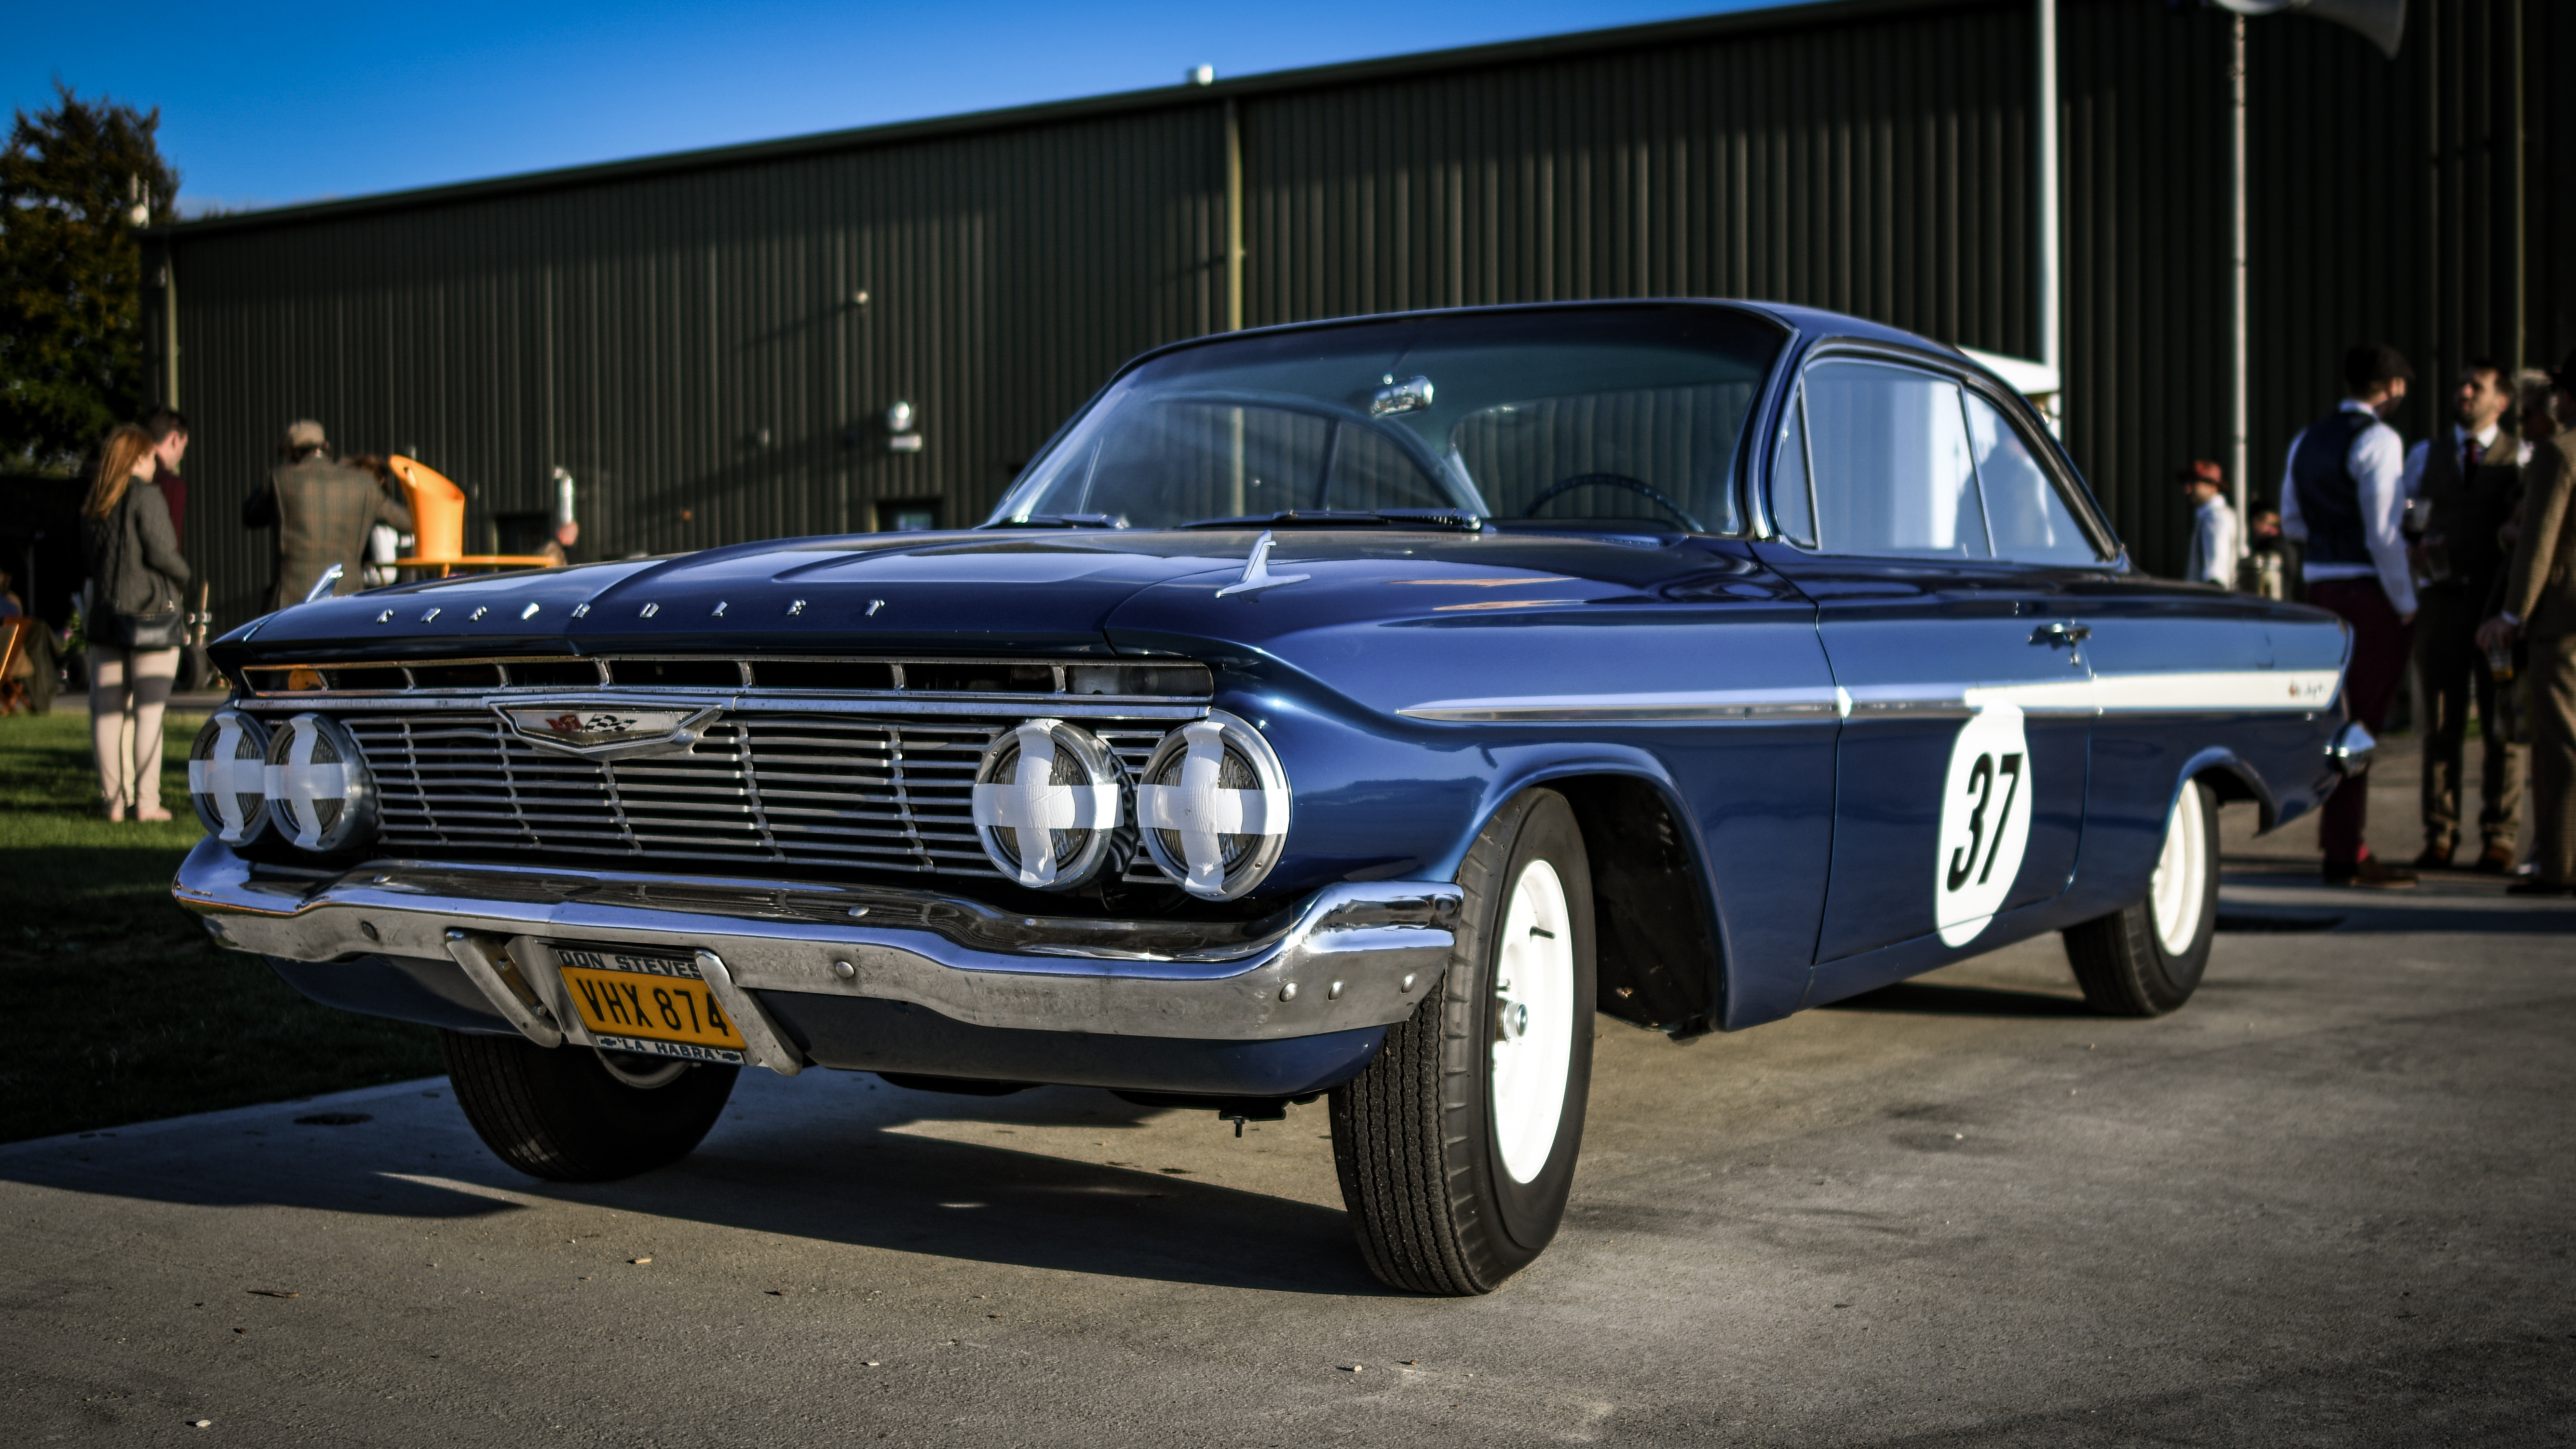 THE RESURRECTION OF DAN GURNEY'S ICONIC CHEVROLET IMPALA DURING THE GOODWOOD REVIVAL.